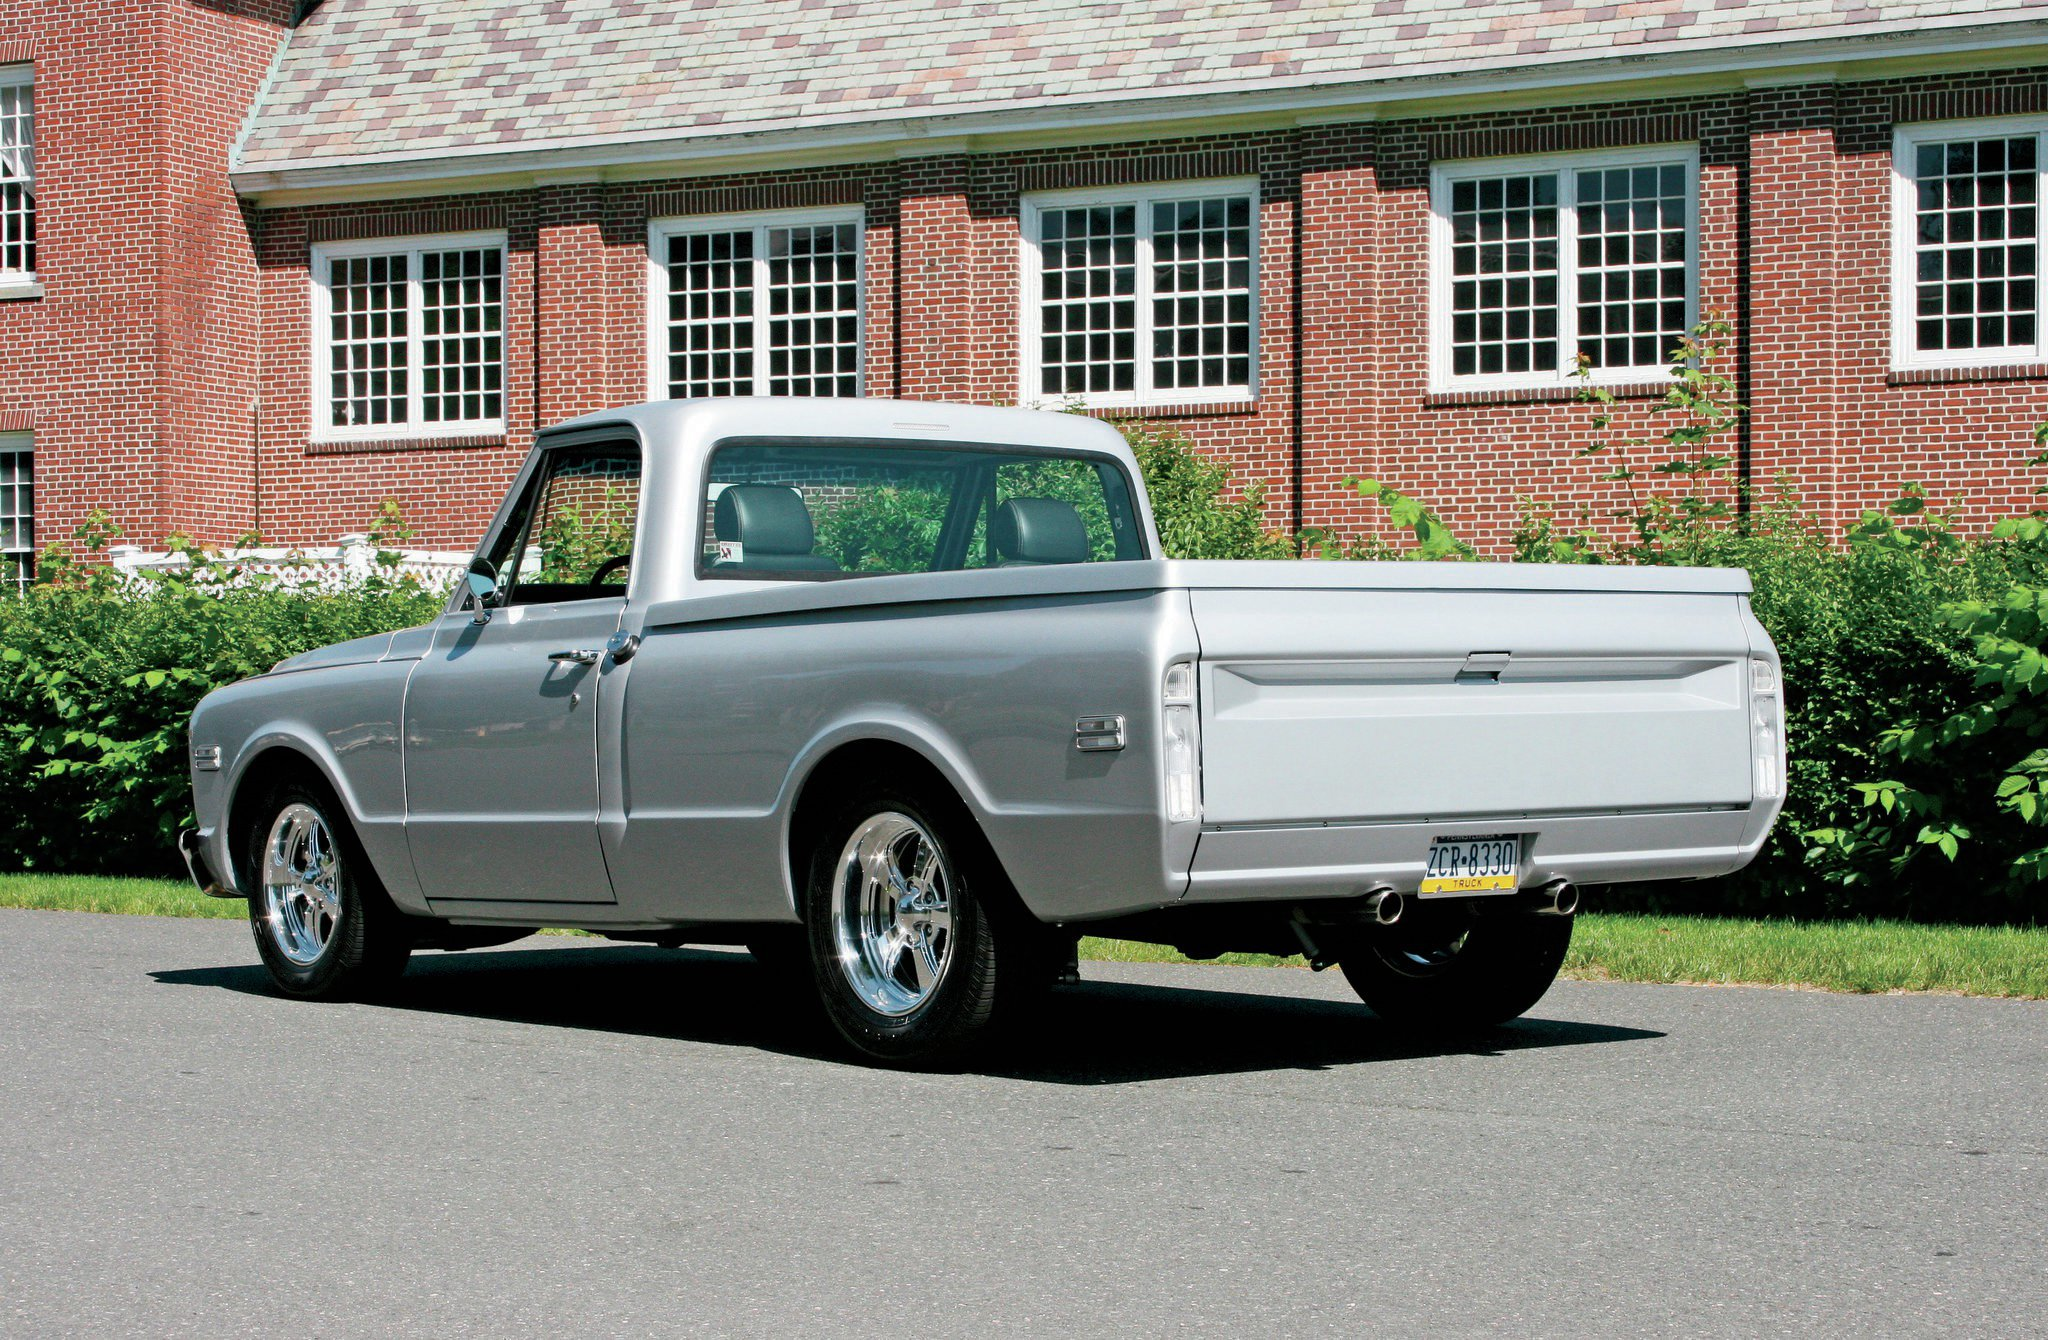 1967 Chevy C10 - Sanitary In Silver - Hot Rod Network